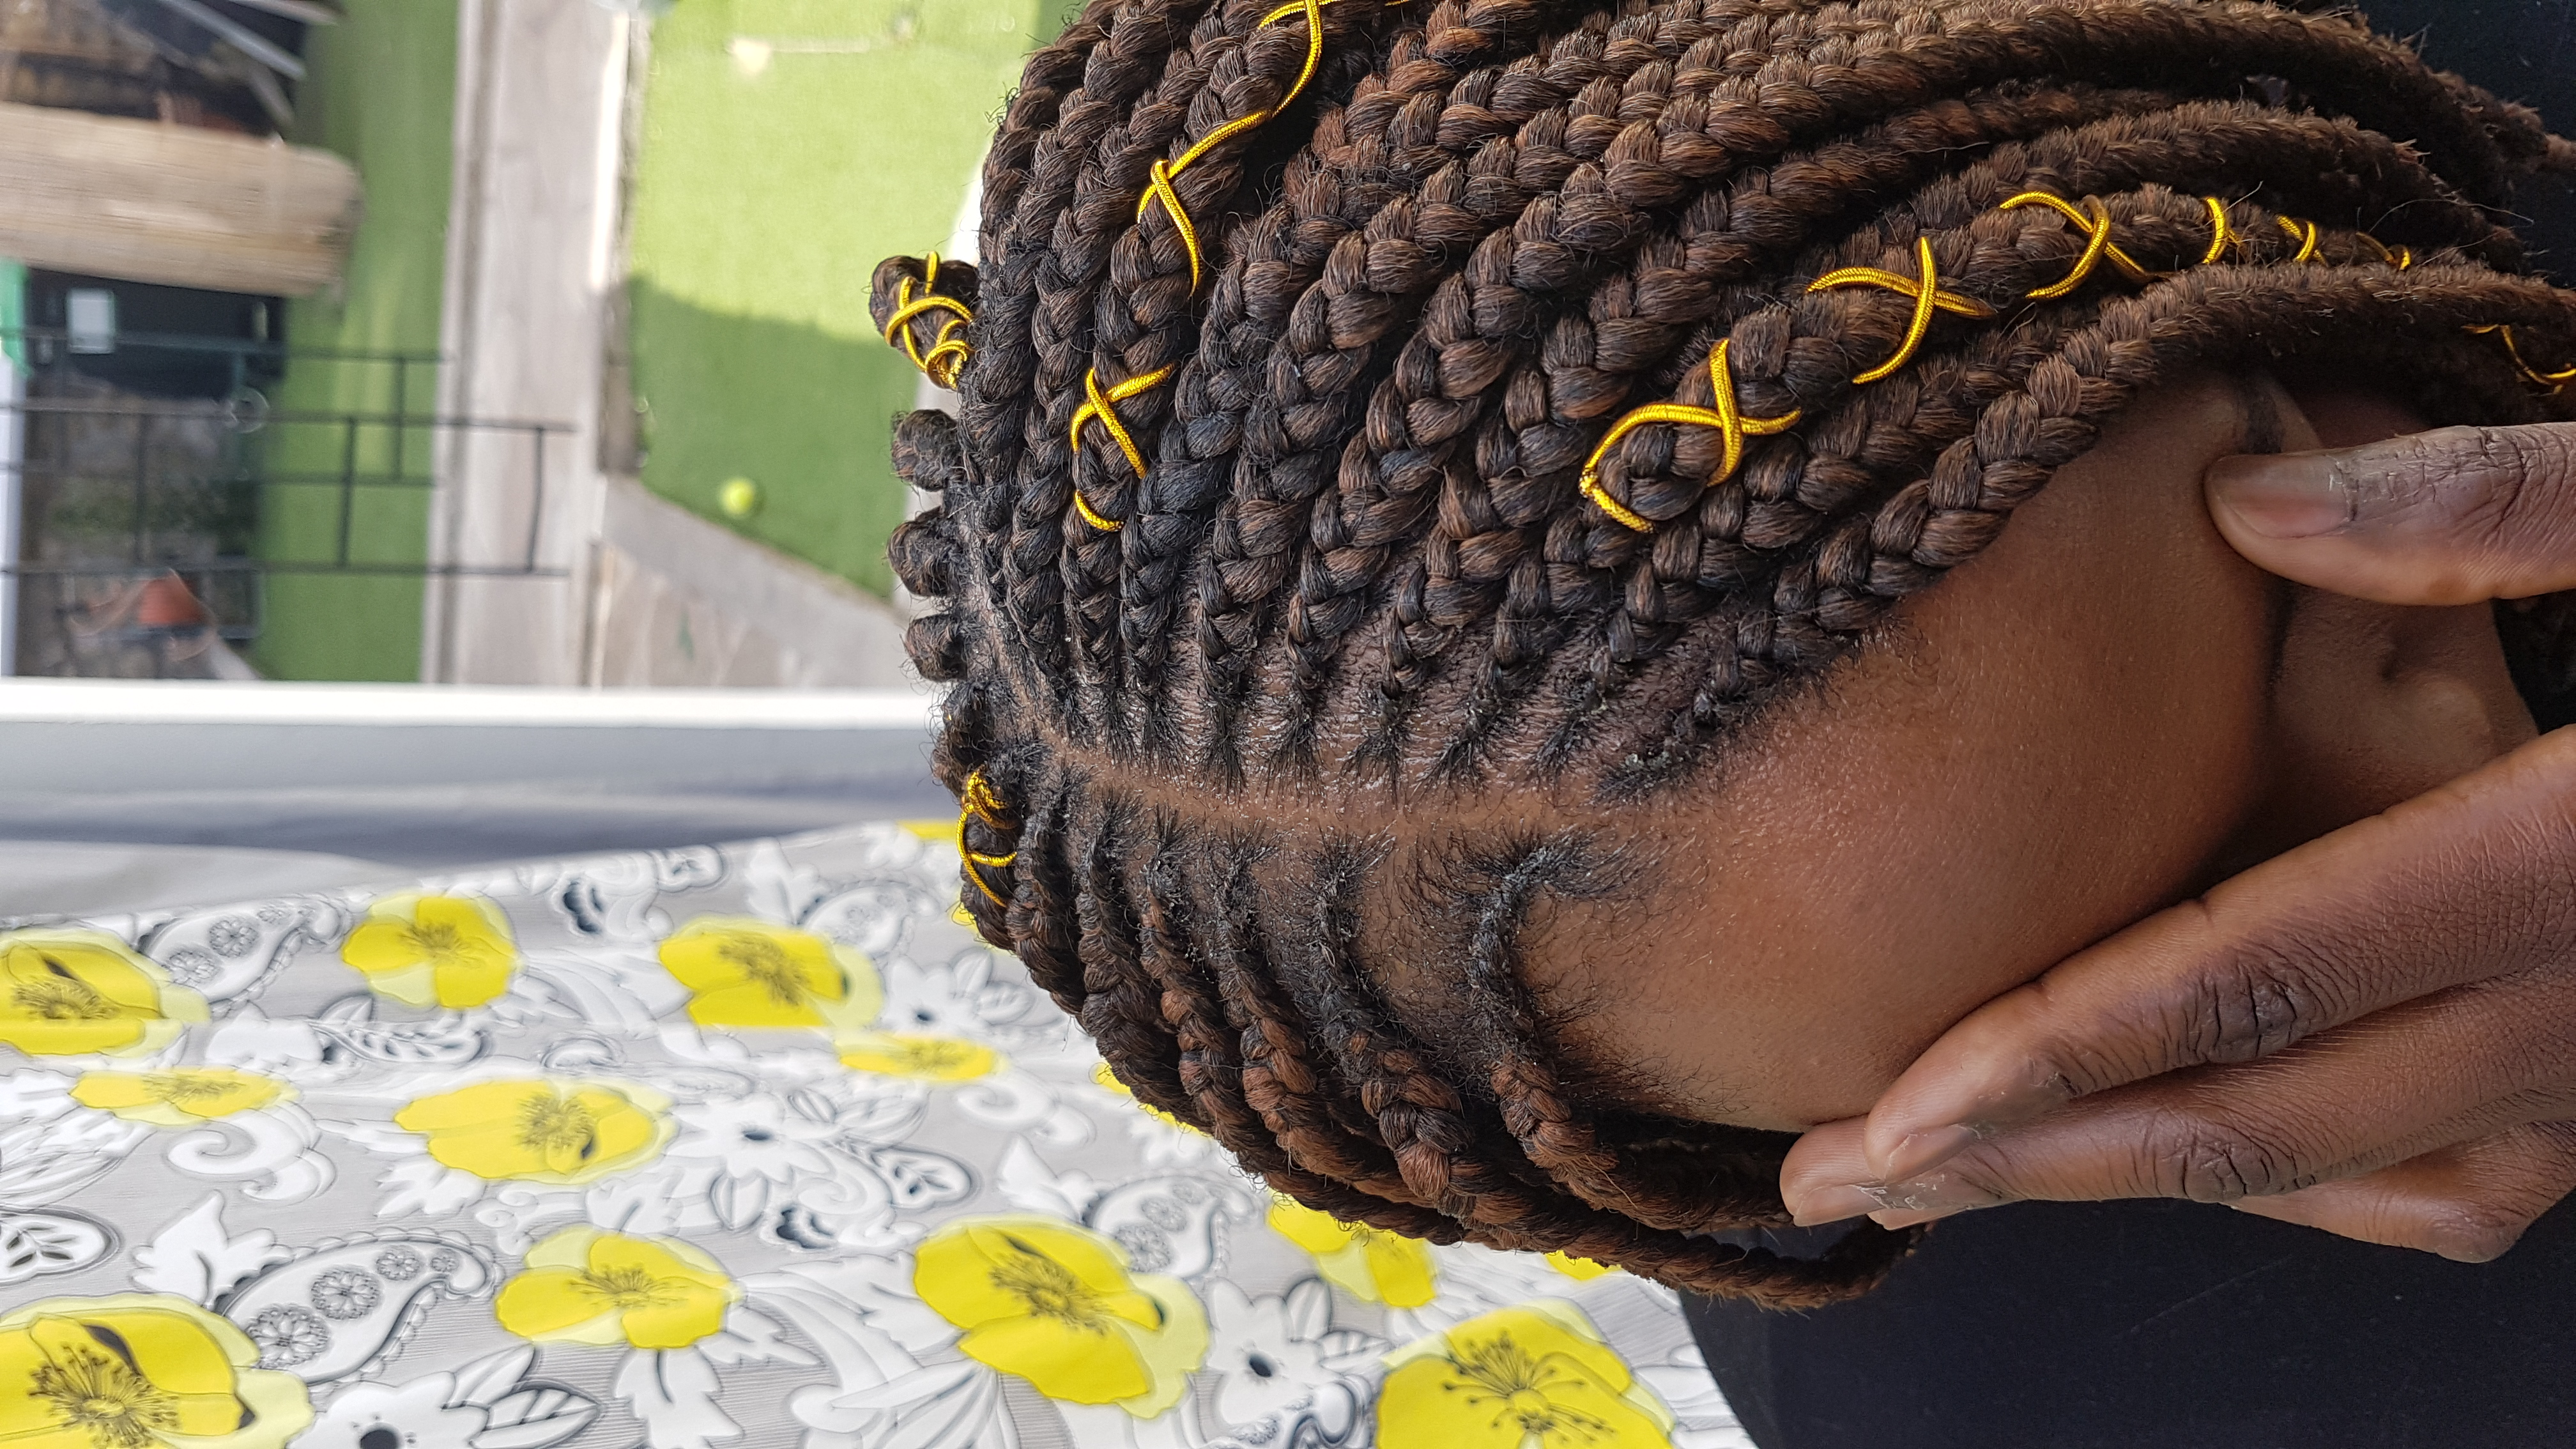 salon de coiffure afro tresse tresses box braids crochet braids vanilles tissages paris 75 77 78 91 92 93 94 95 LQUWEGUA